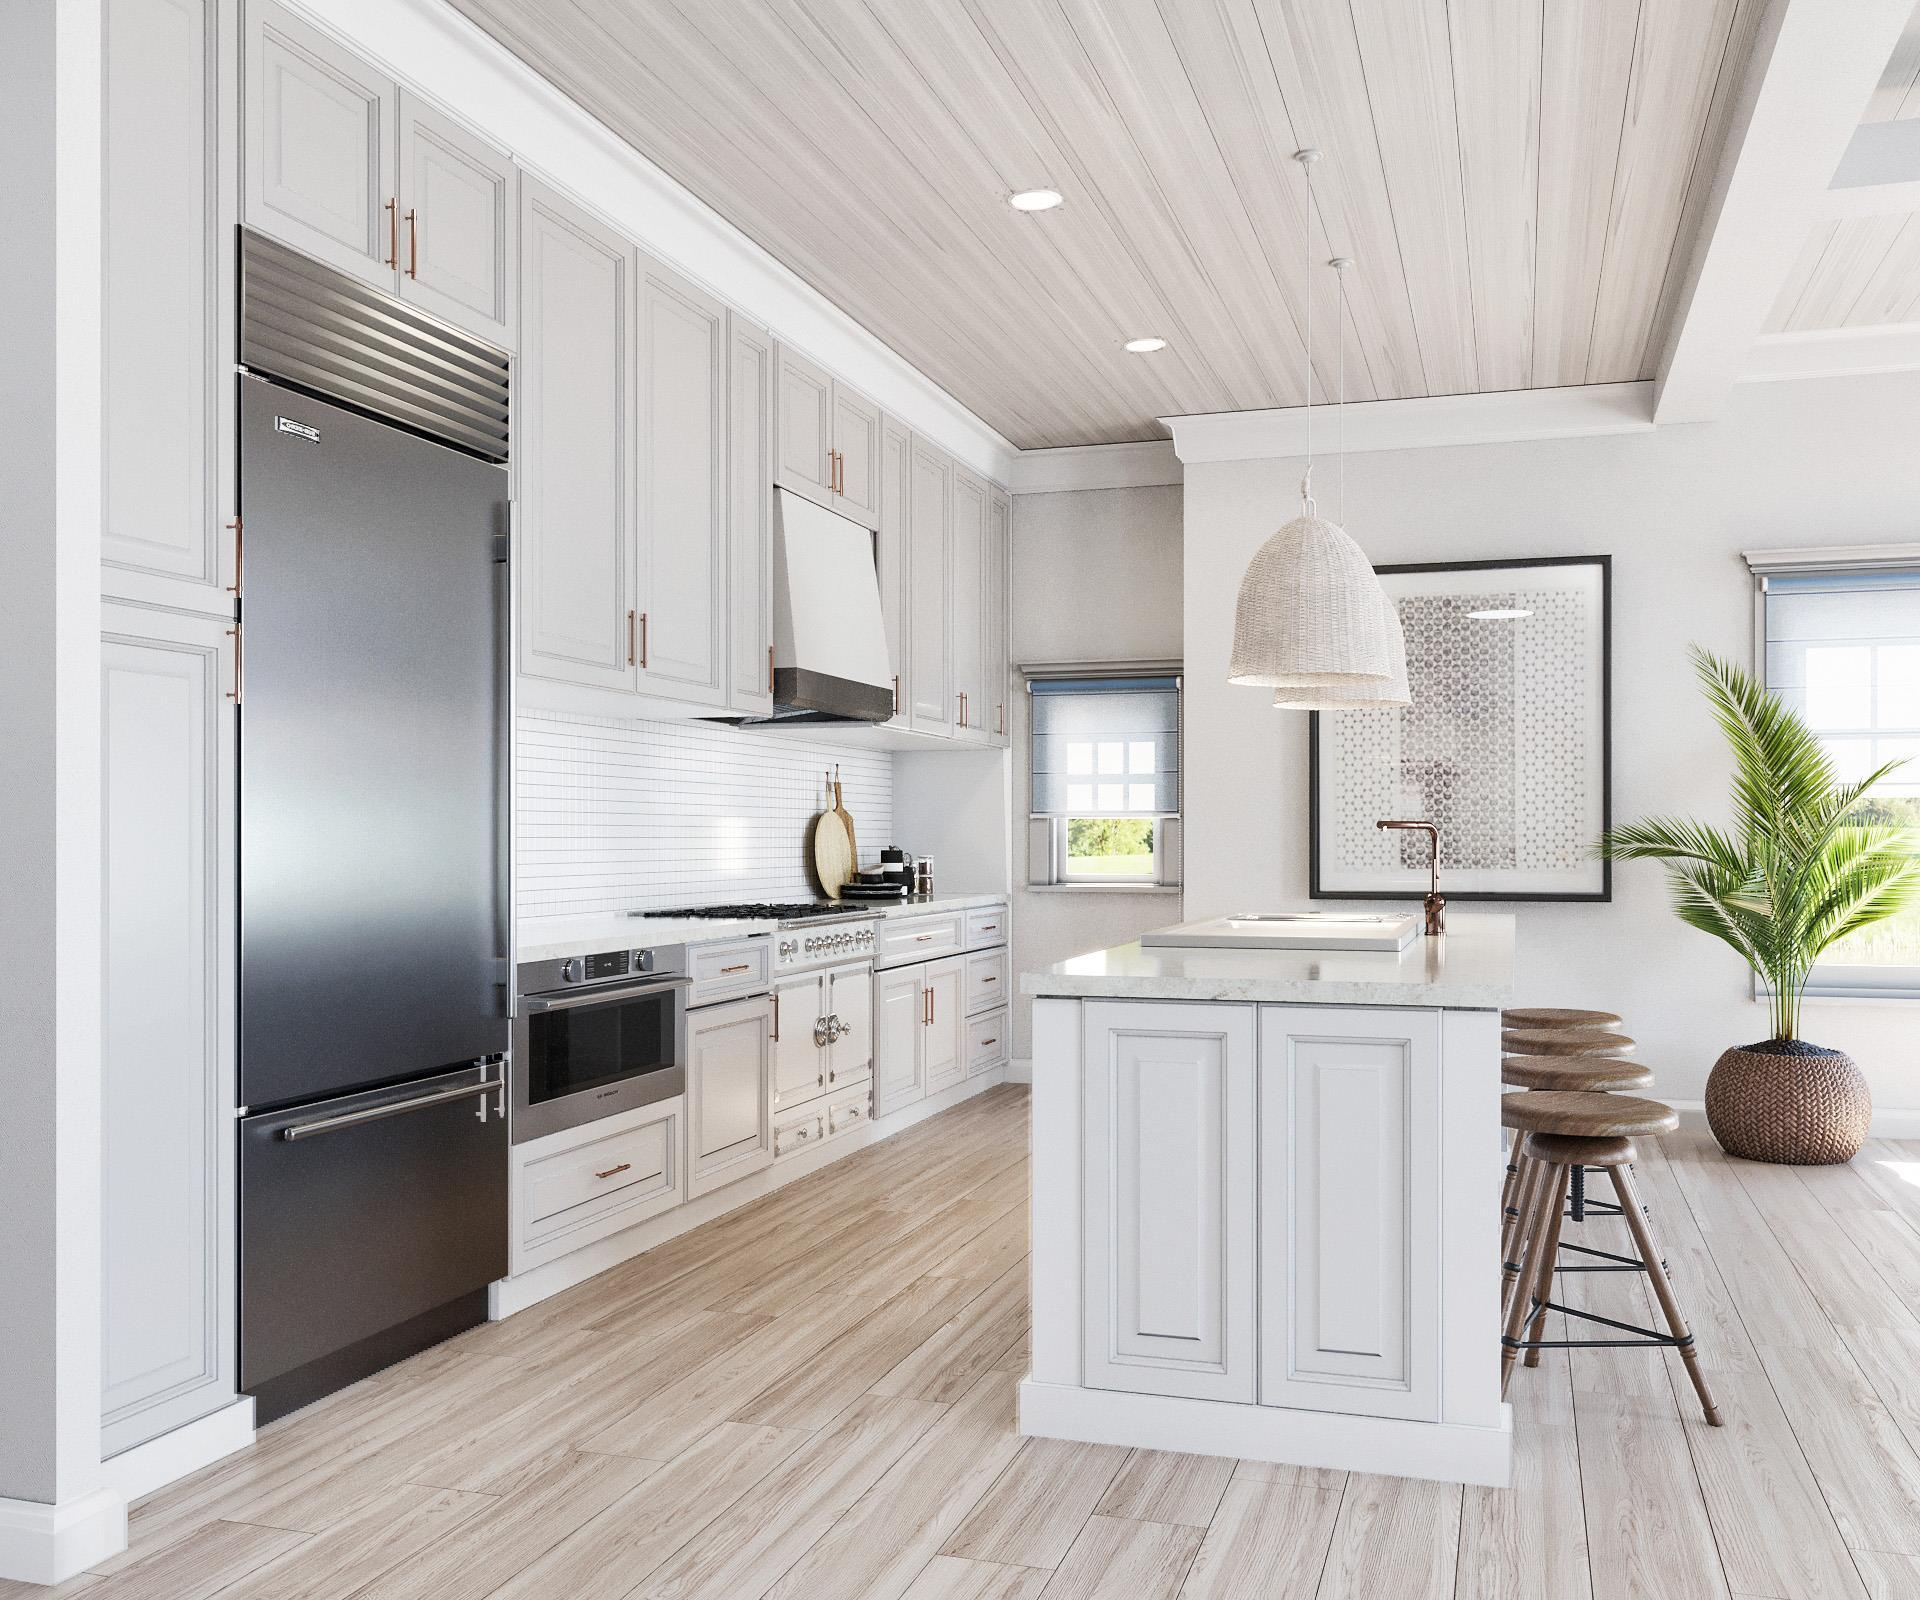 Kitchen featured in the Villa C2 By Beechwood Homes in Nassau-Suffolk, NY